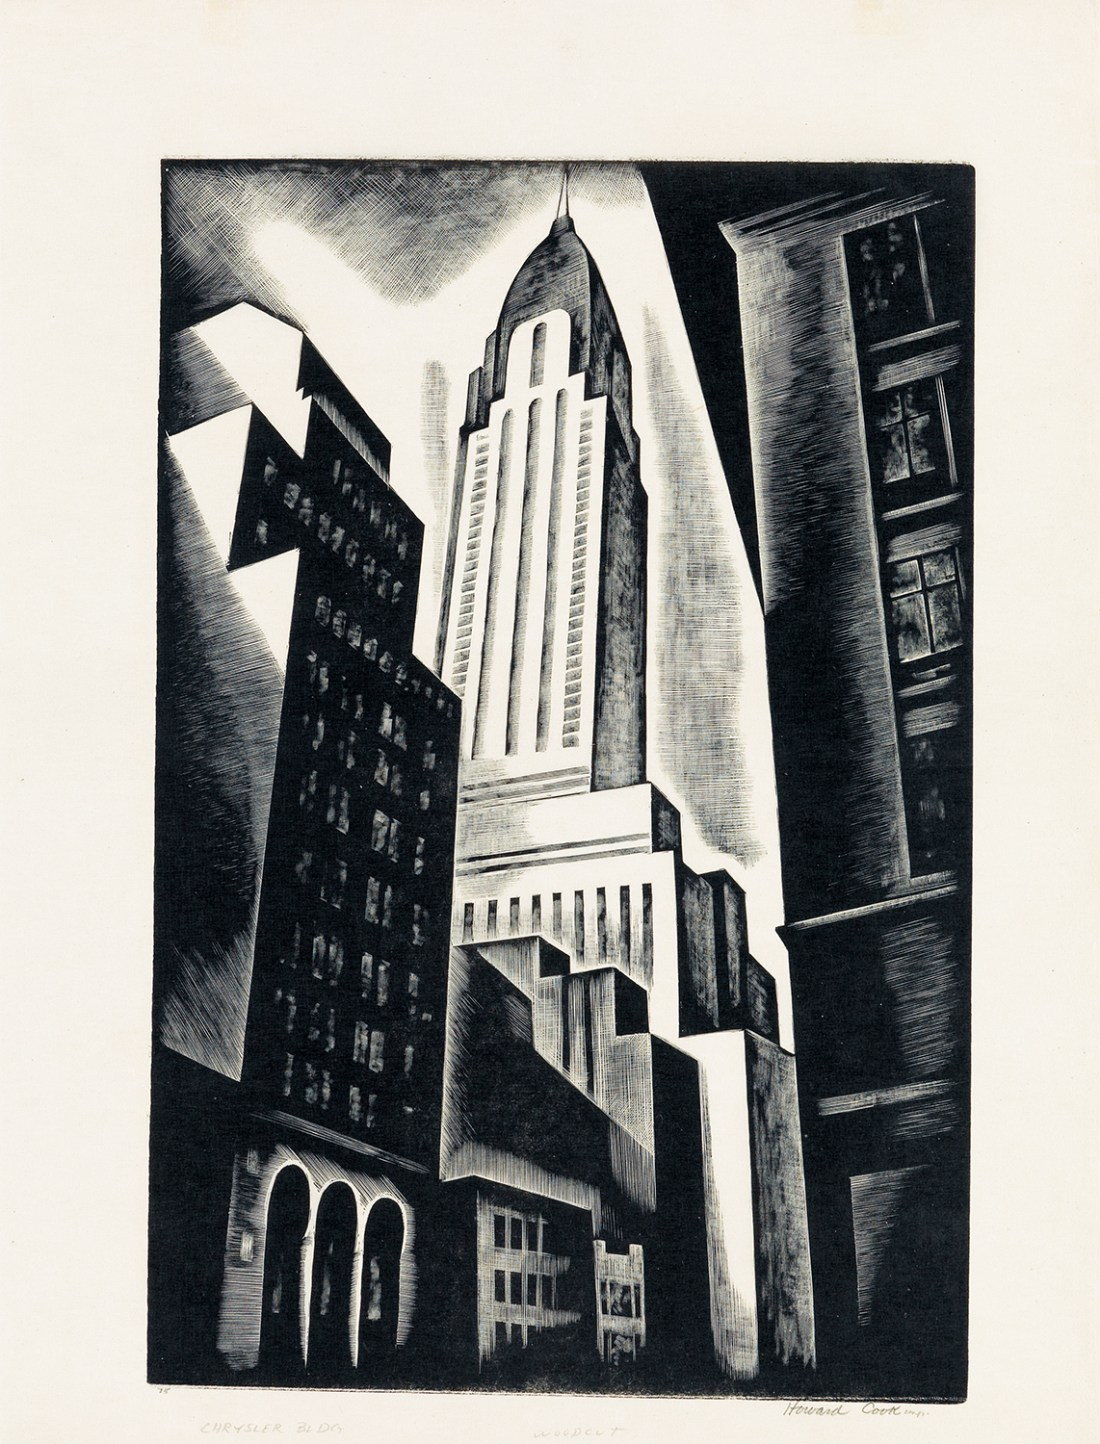 Chrysler Building, a 1930 print by Howard Cook.